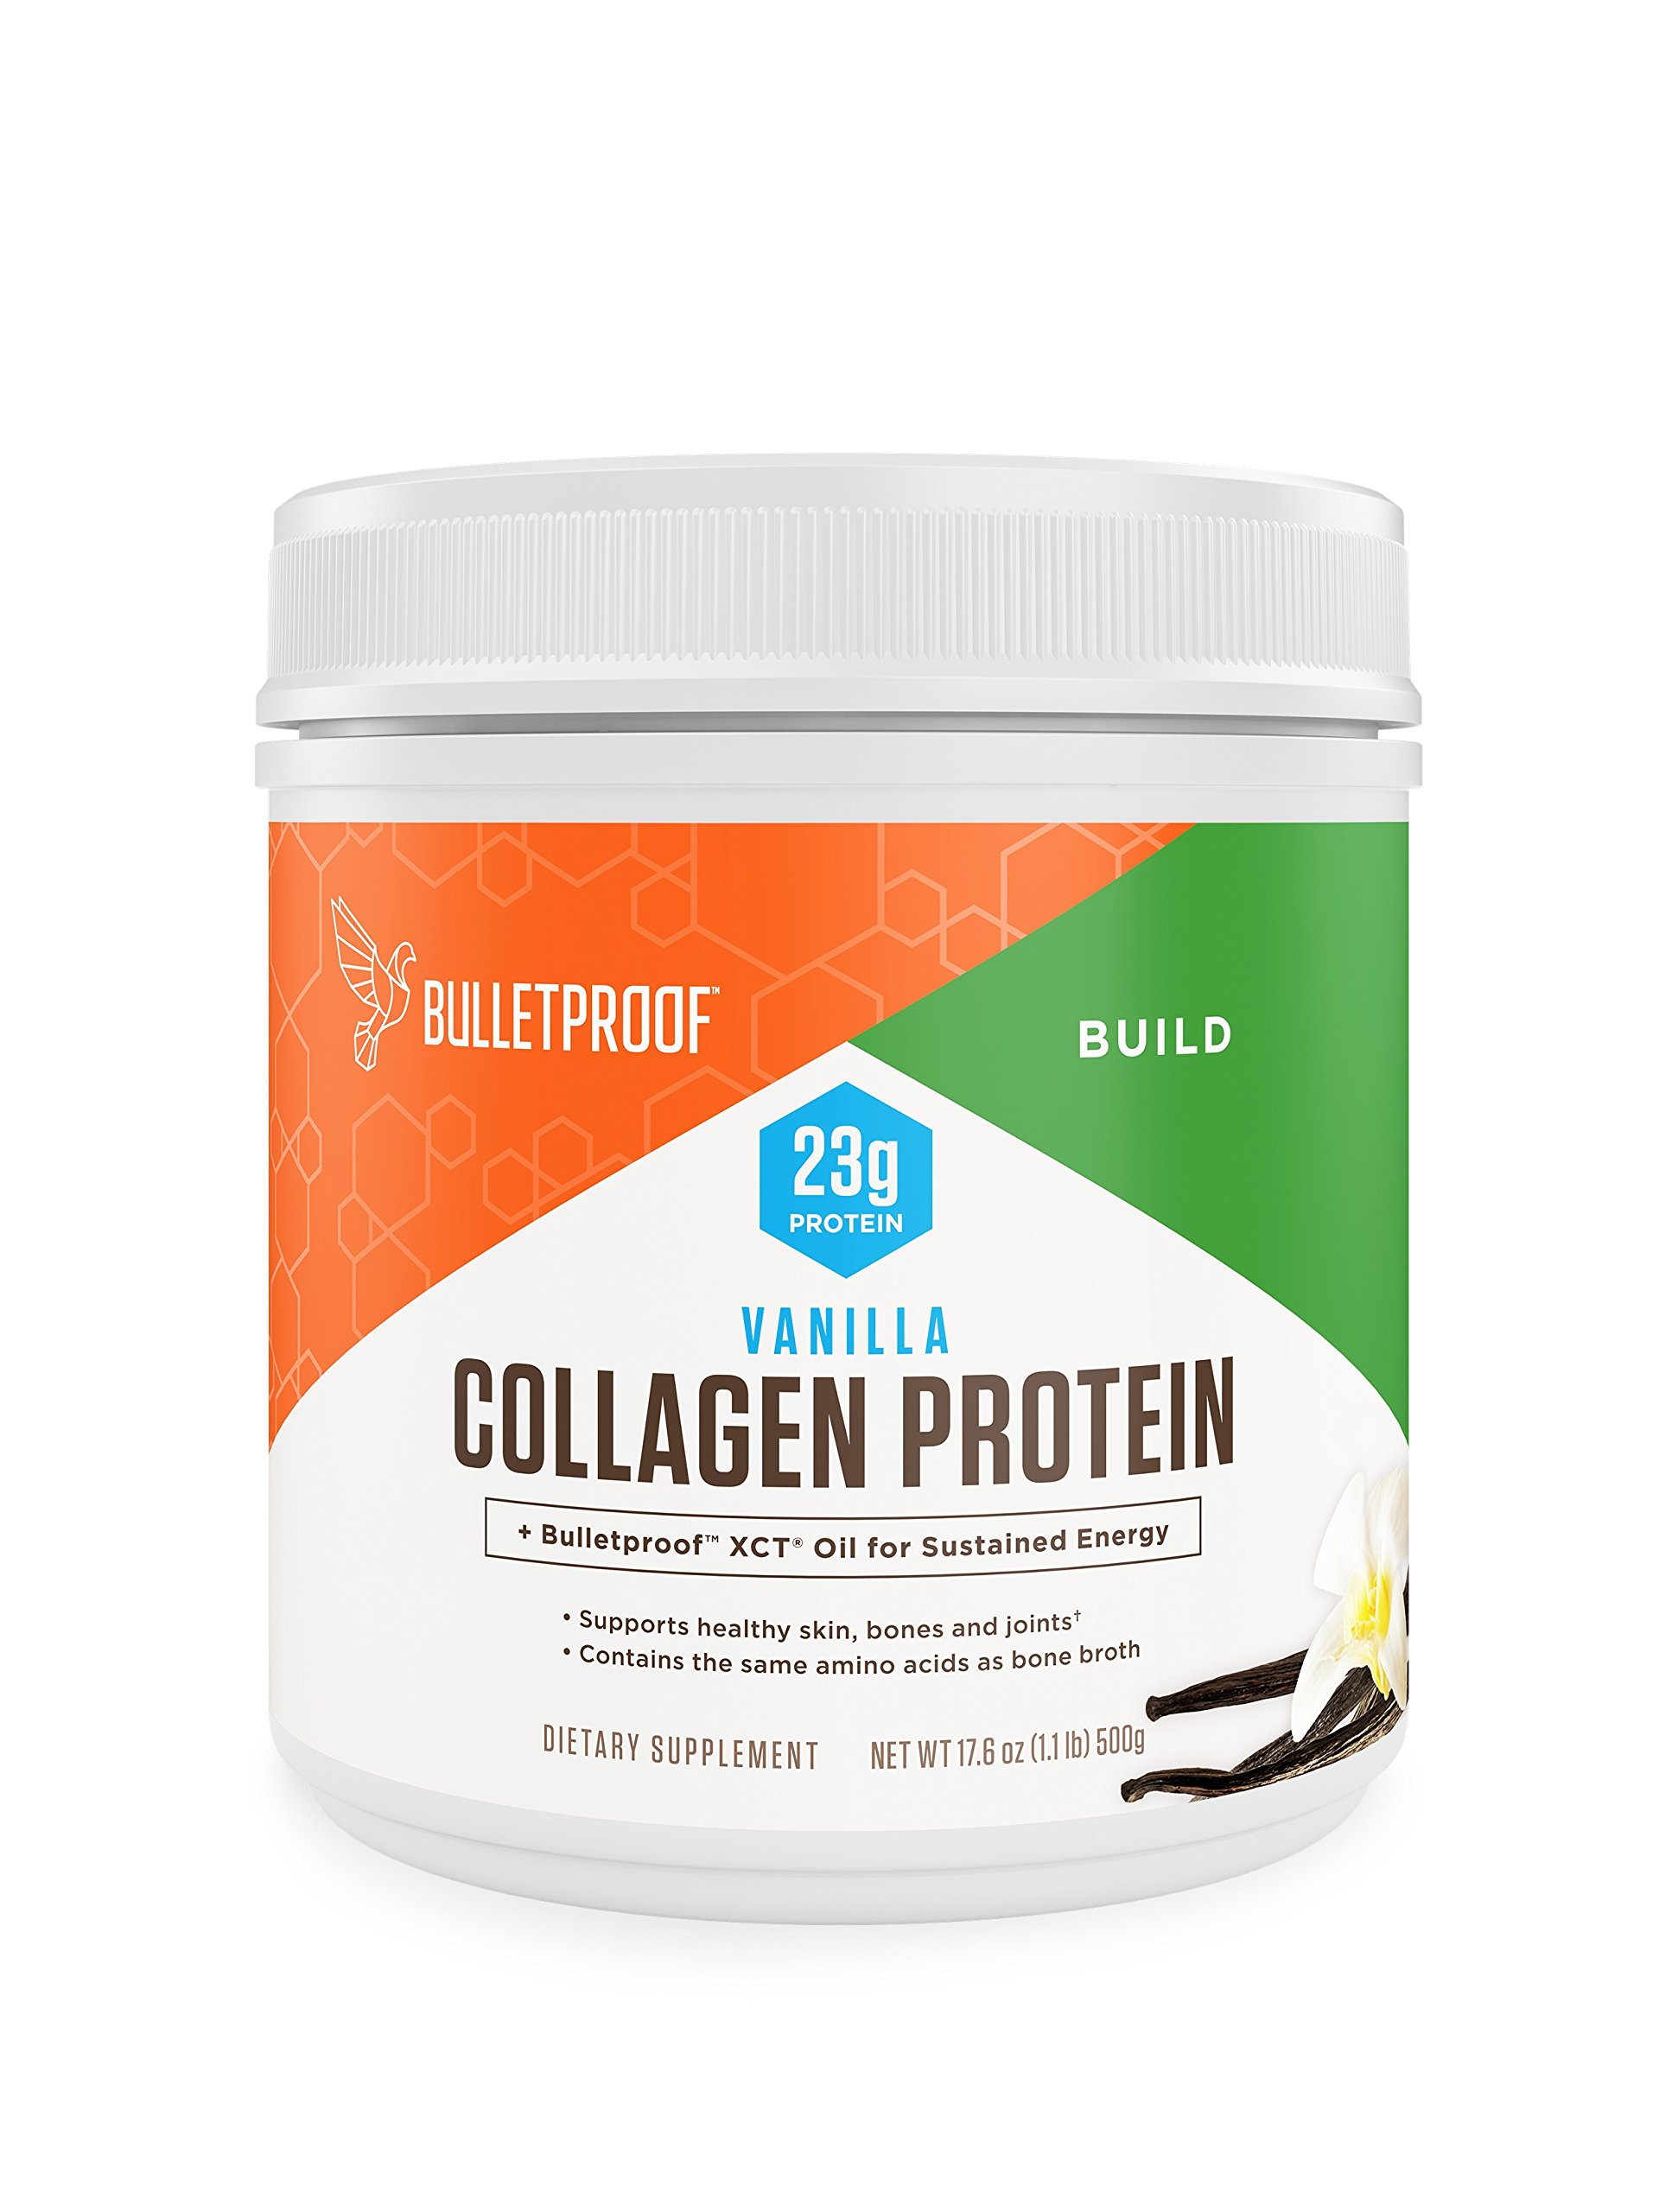 Bulletproof Collagen Protein Powder - Vanilla Flavored Hydrolyzed, Grass Fed, Pasture Raised, Ketogenic Diet, Amino Acid Building Blocks for High Performance (17.6 ounces)